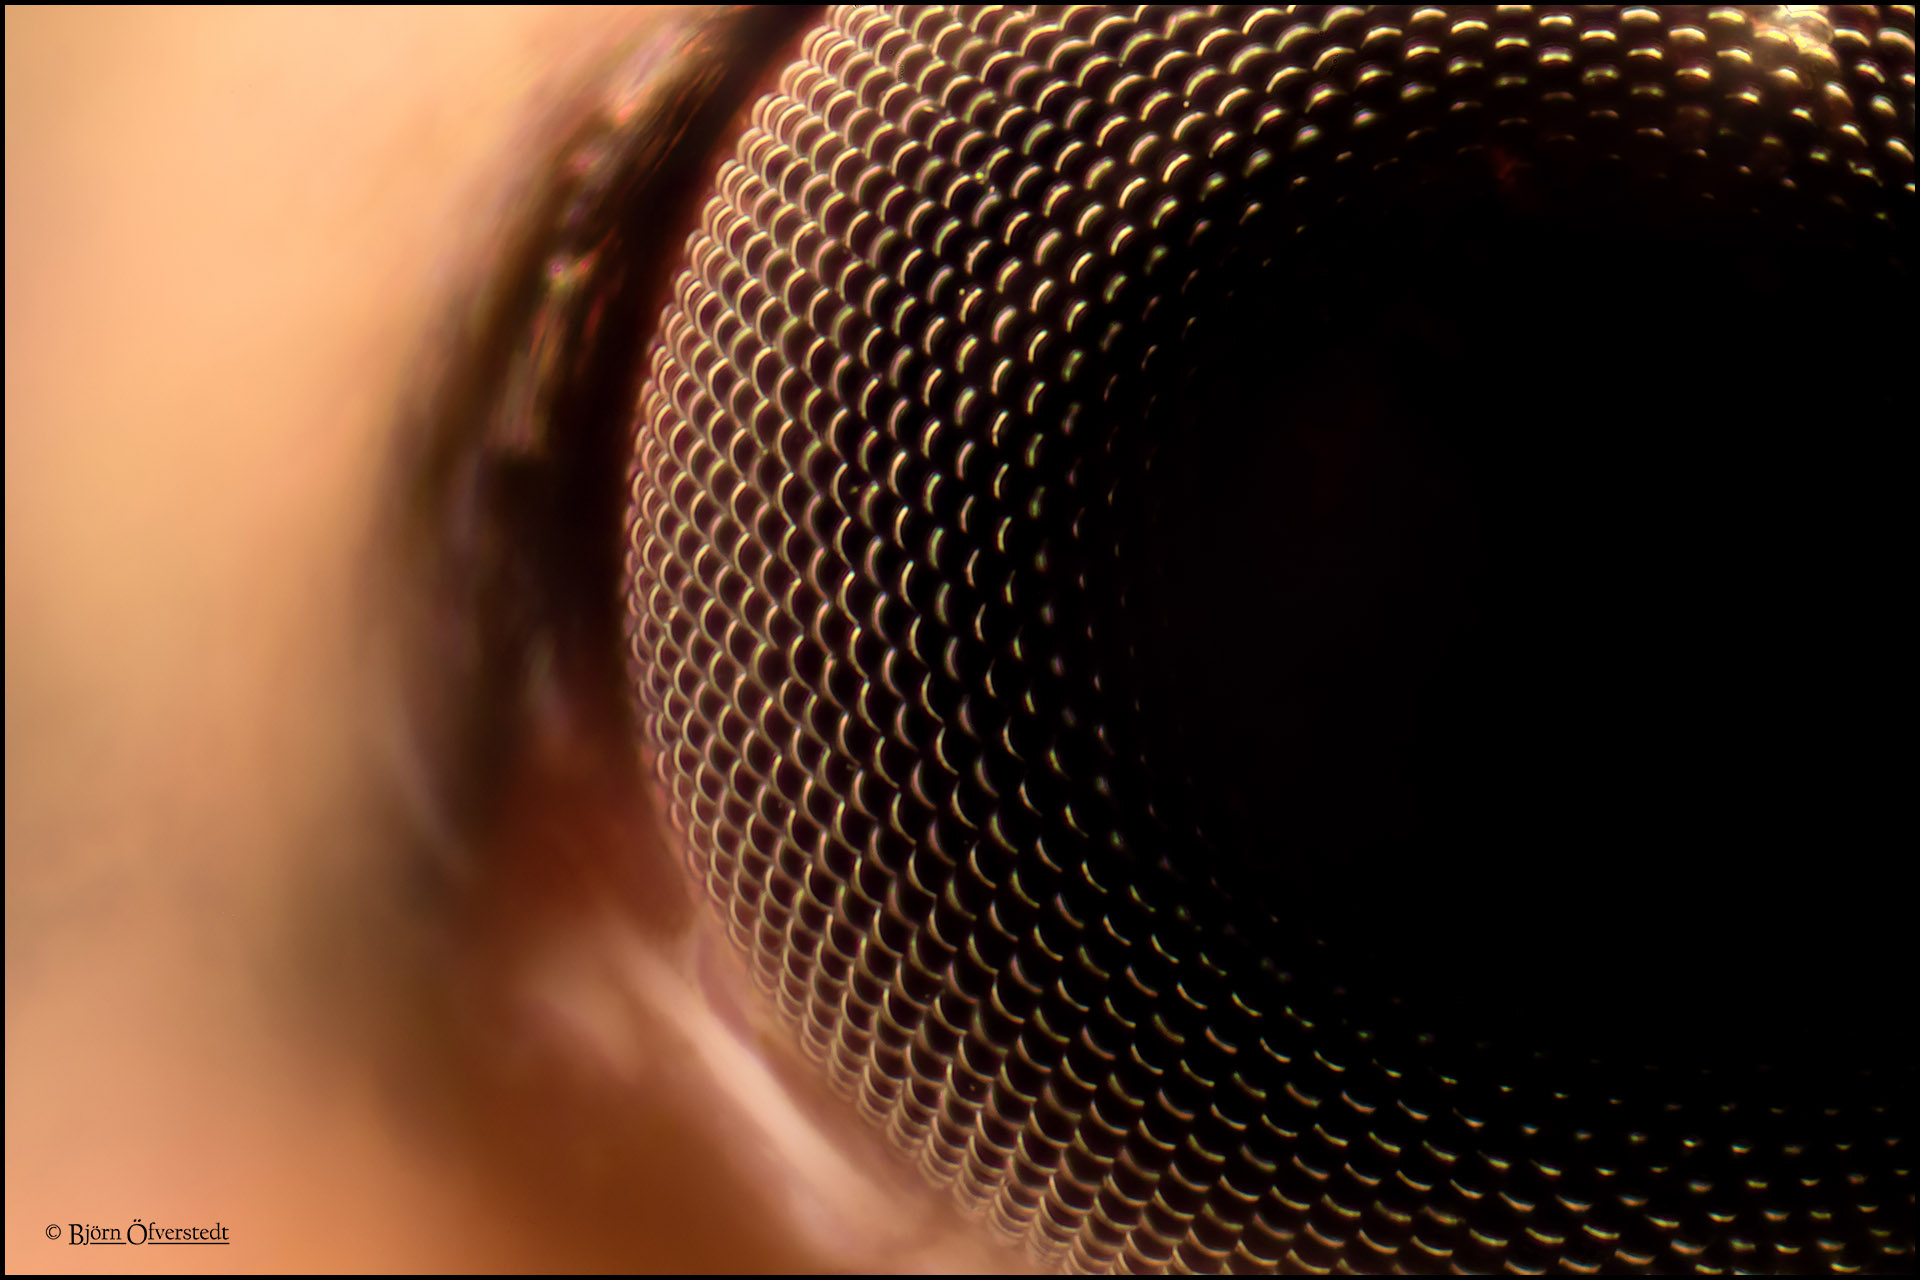 Eye of a fly